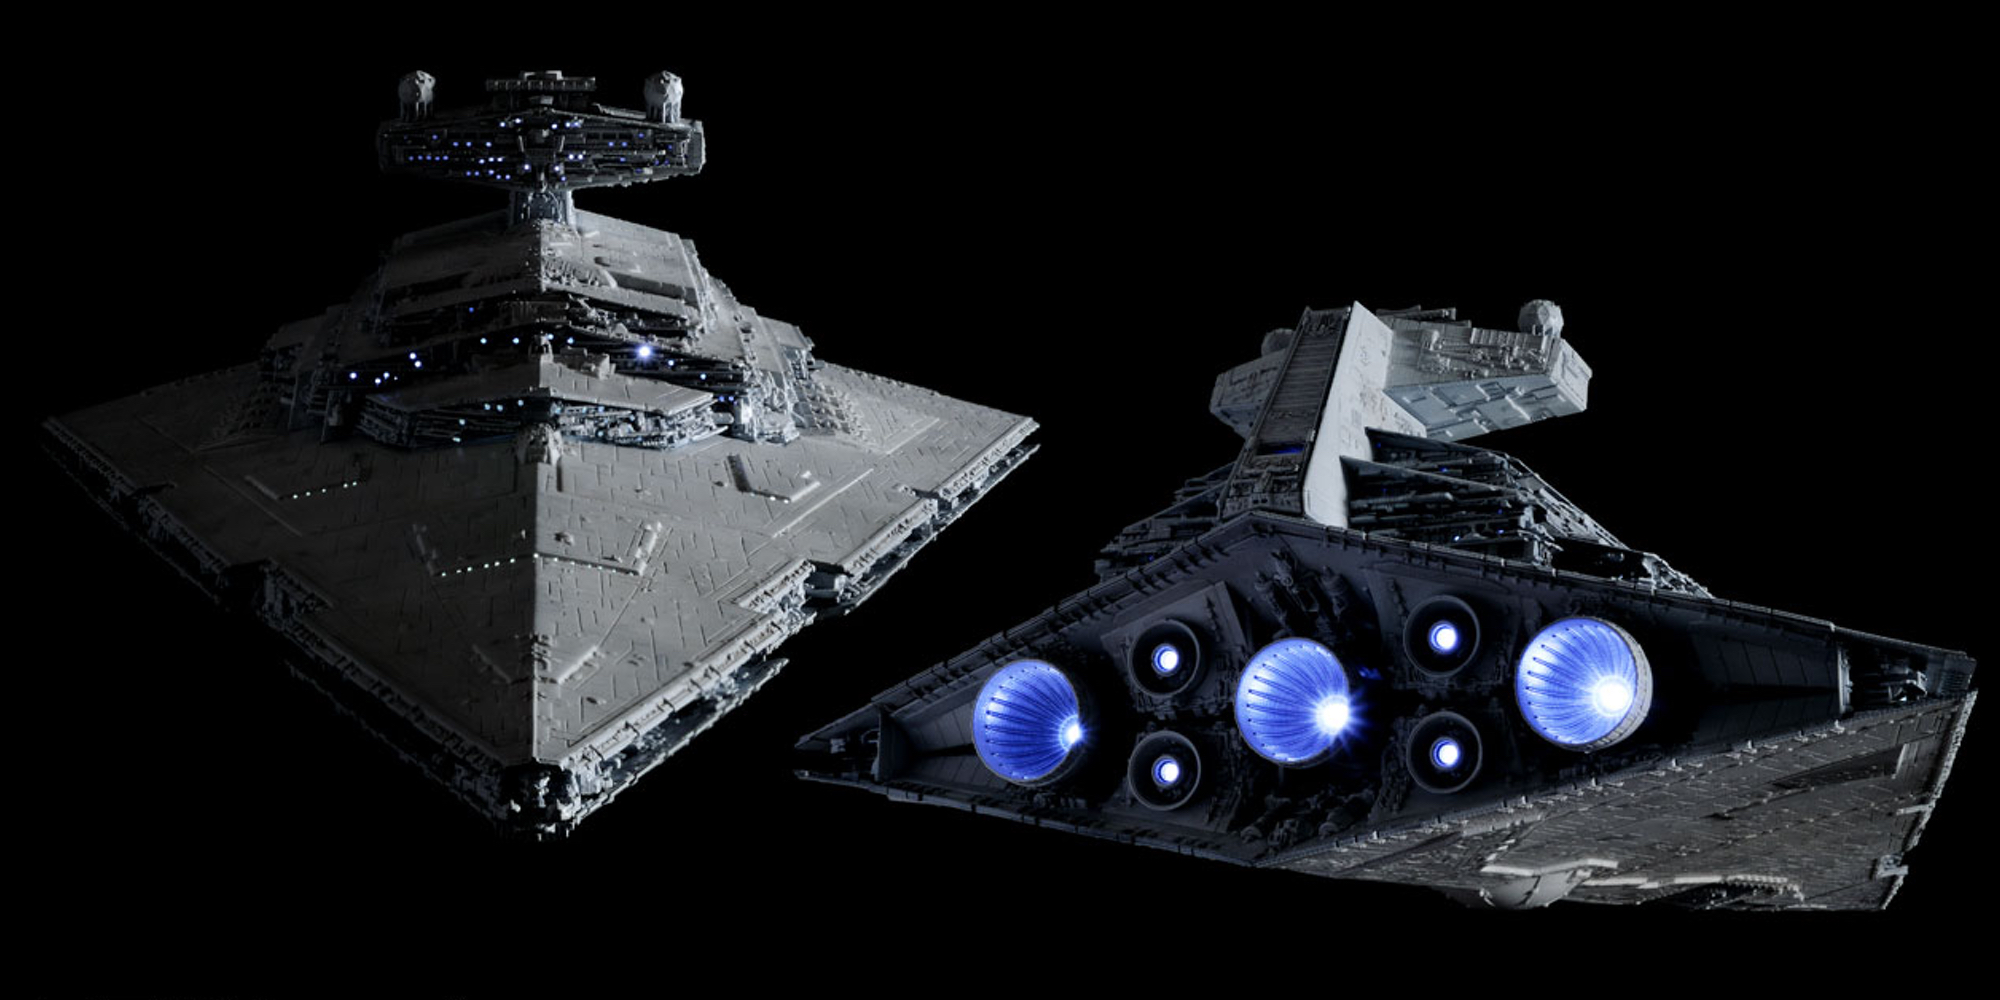 Bandai announces new Imperial Star Destroyer Model Kit, its first 1/5000 Star Wars recreation